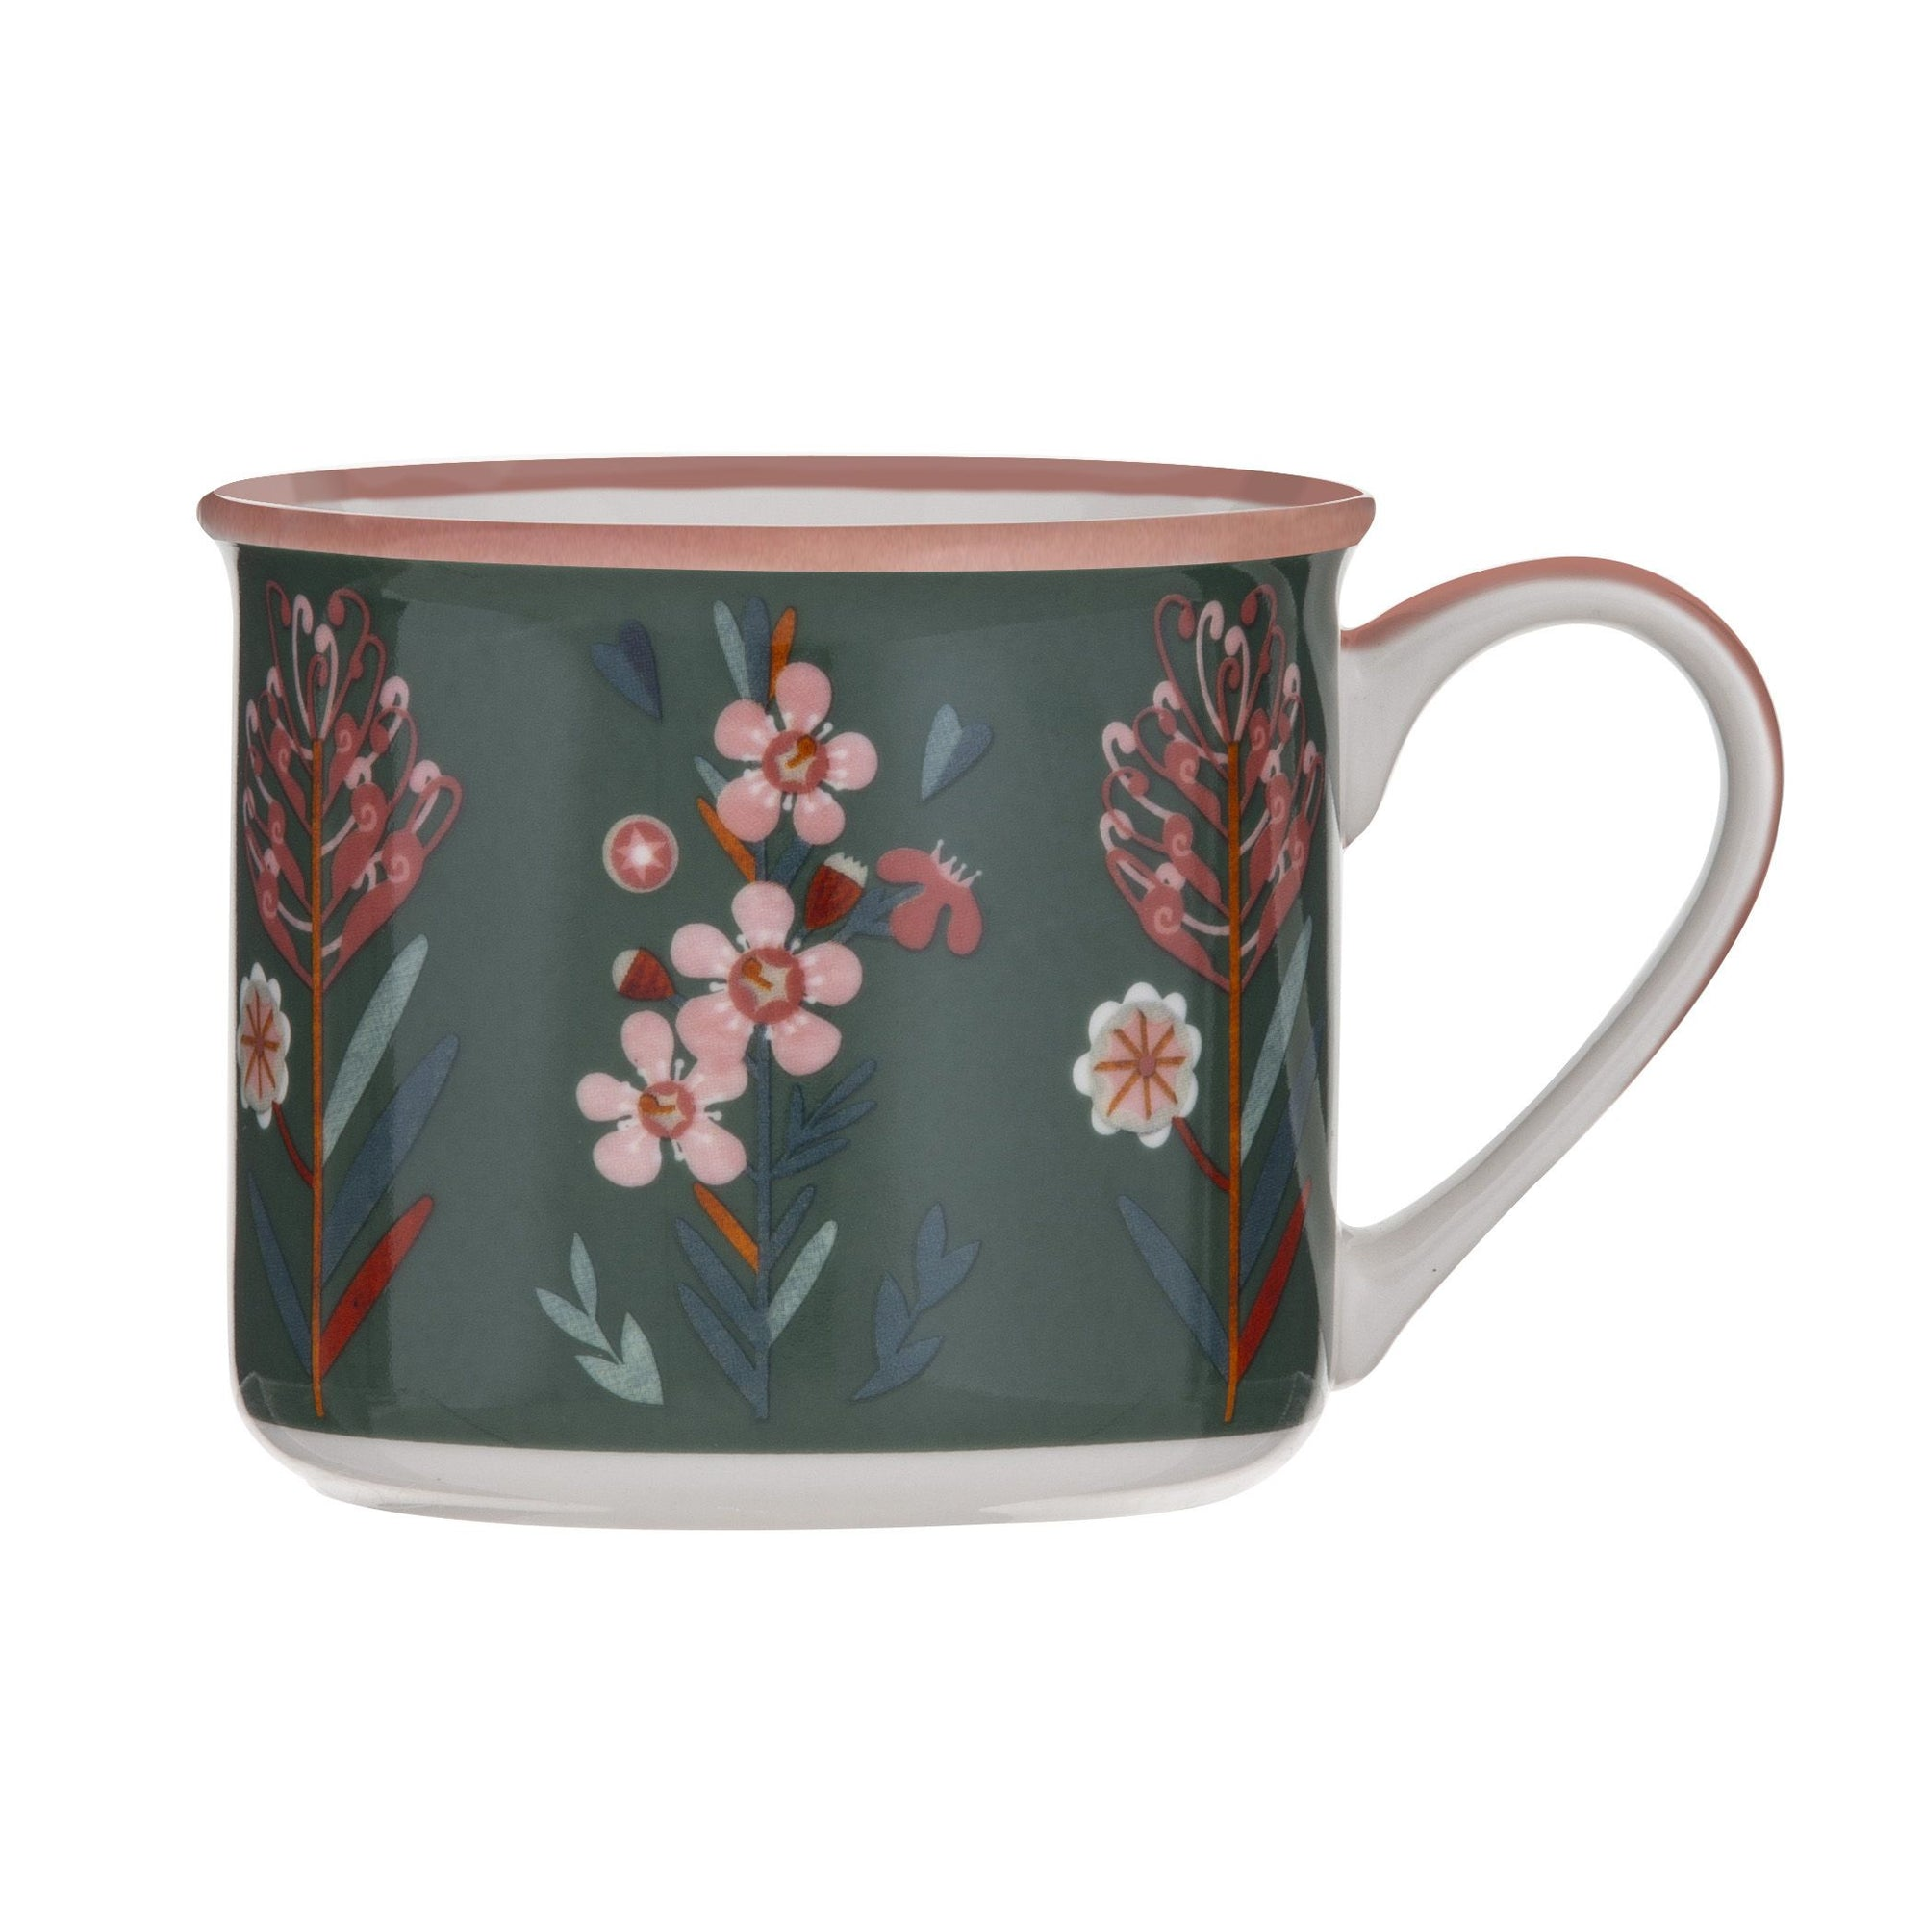 Grevillia Wax Flower Mug